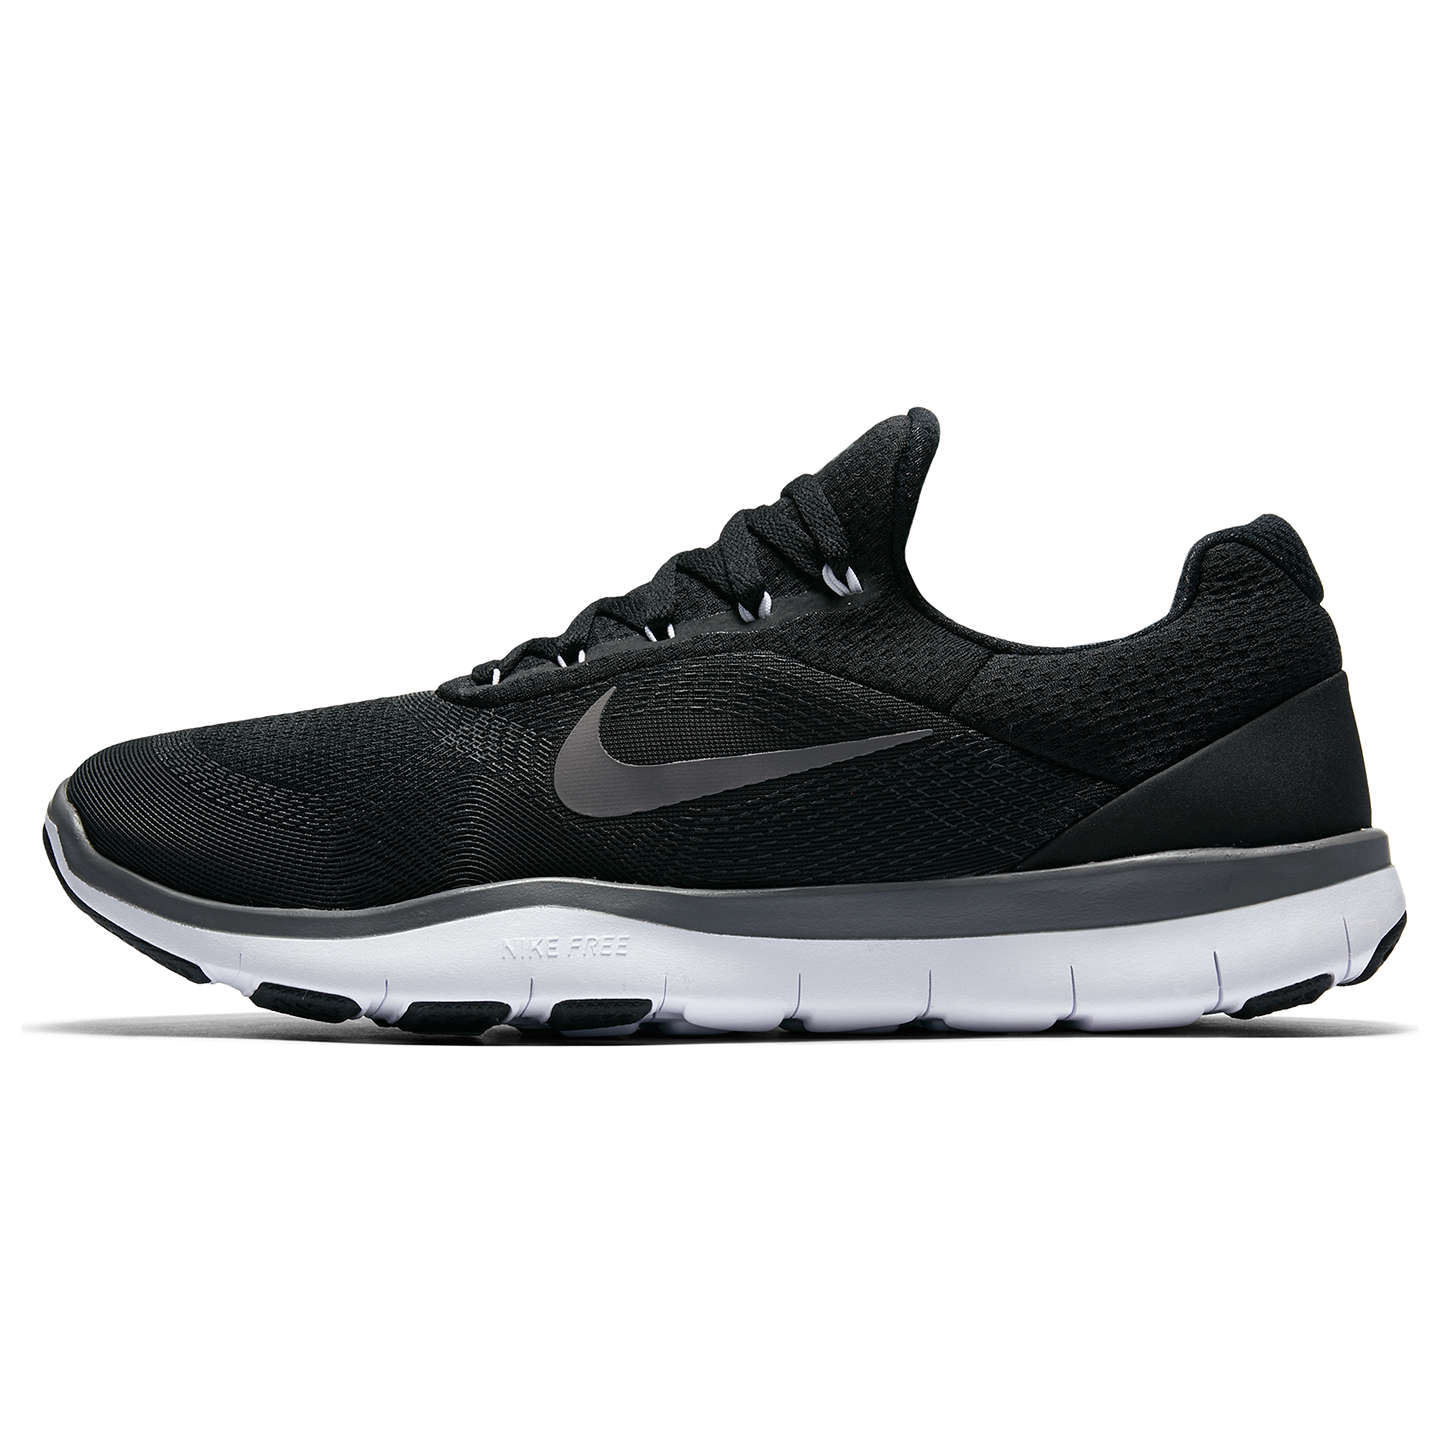 Nike Free Trainer 7.0 Prix Samsung Philippines mode rabais style vente confortable où trouver 5JD7Ho